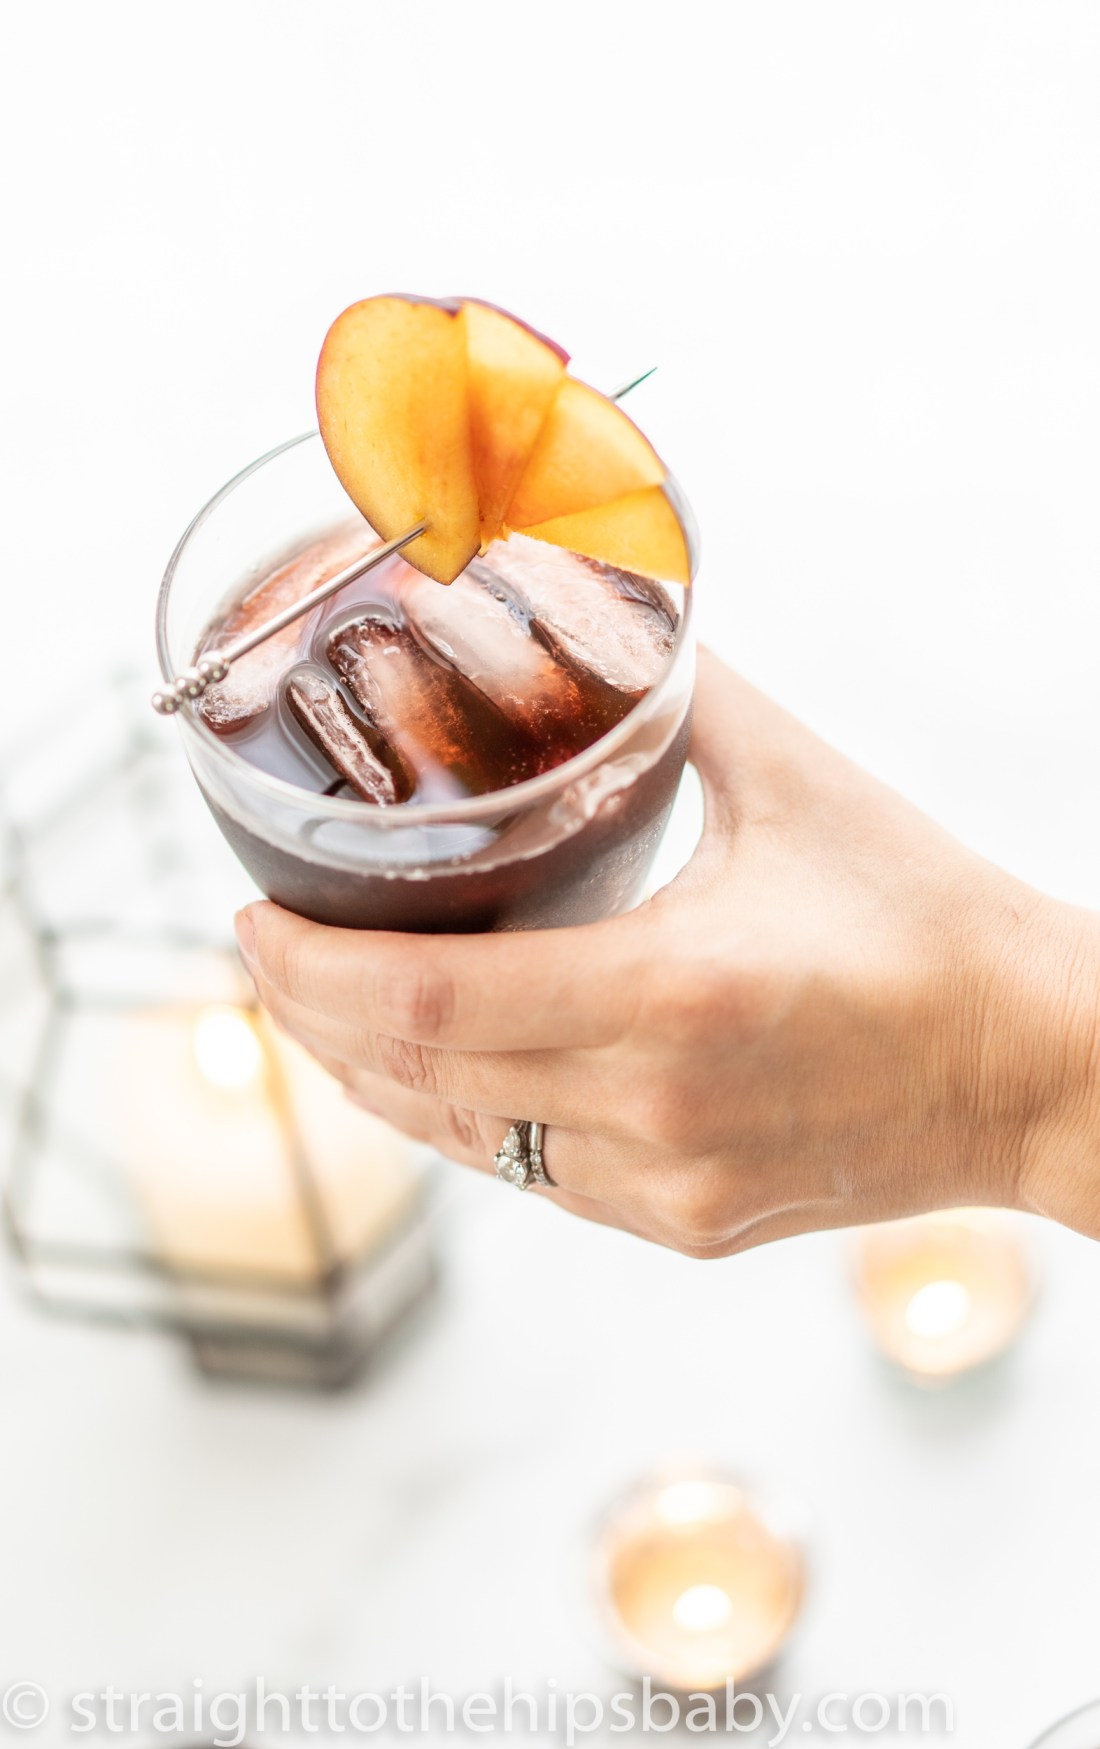 a woman's hand holding a finished ruby colored plum margarita